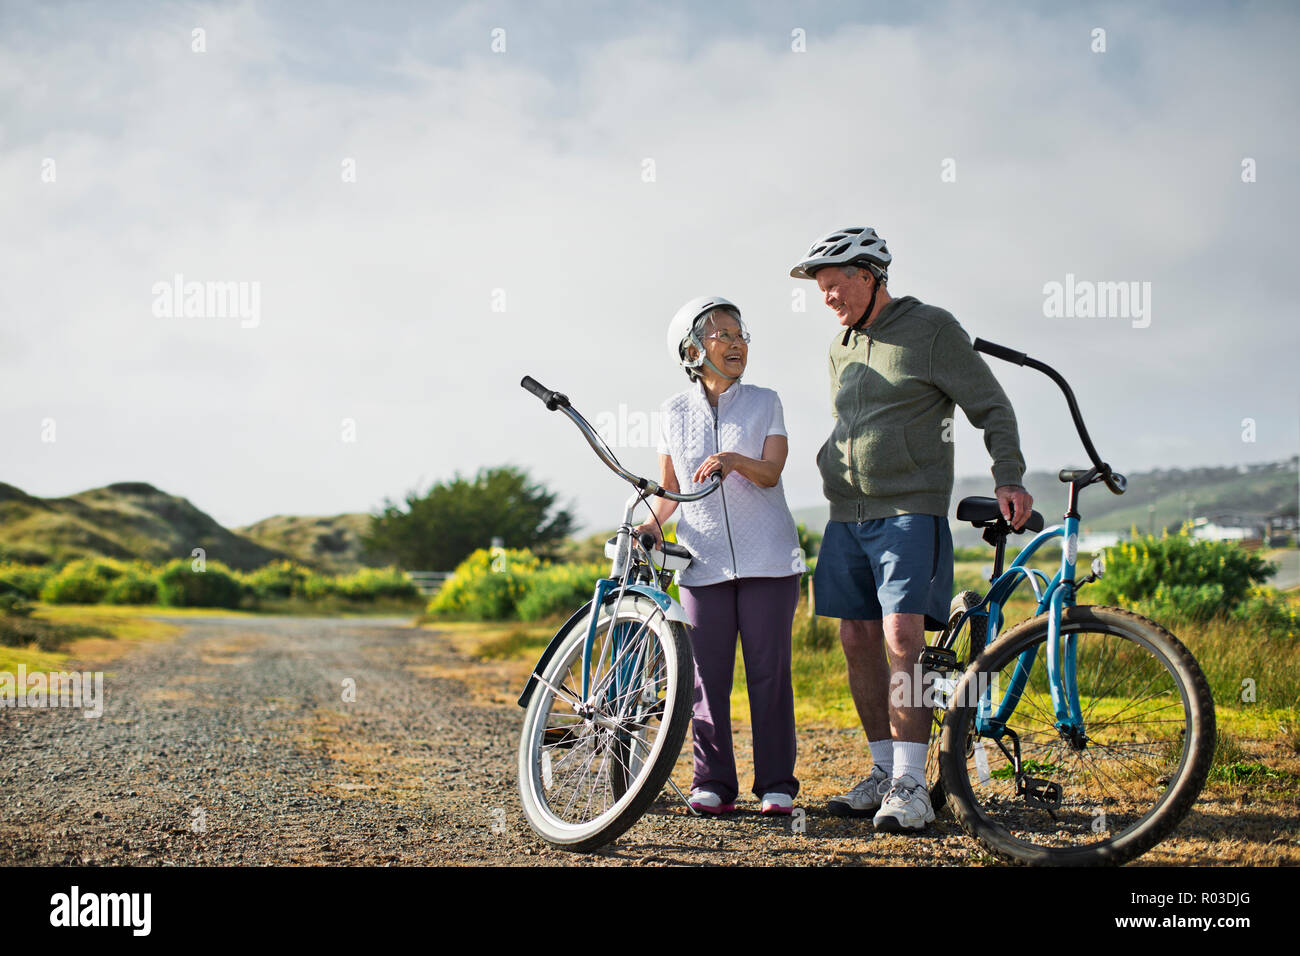 Happy elderly couple chat together as they take a break from biking along a country road. - Stock Image